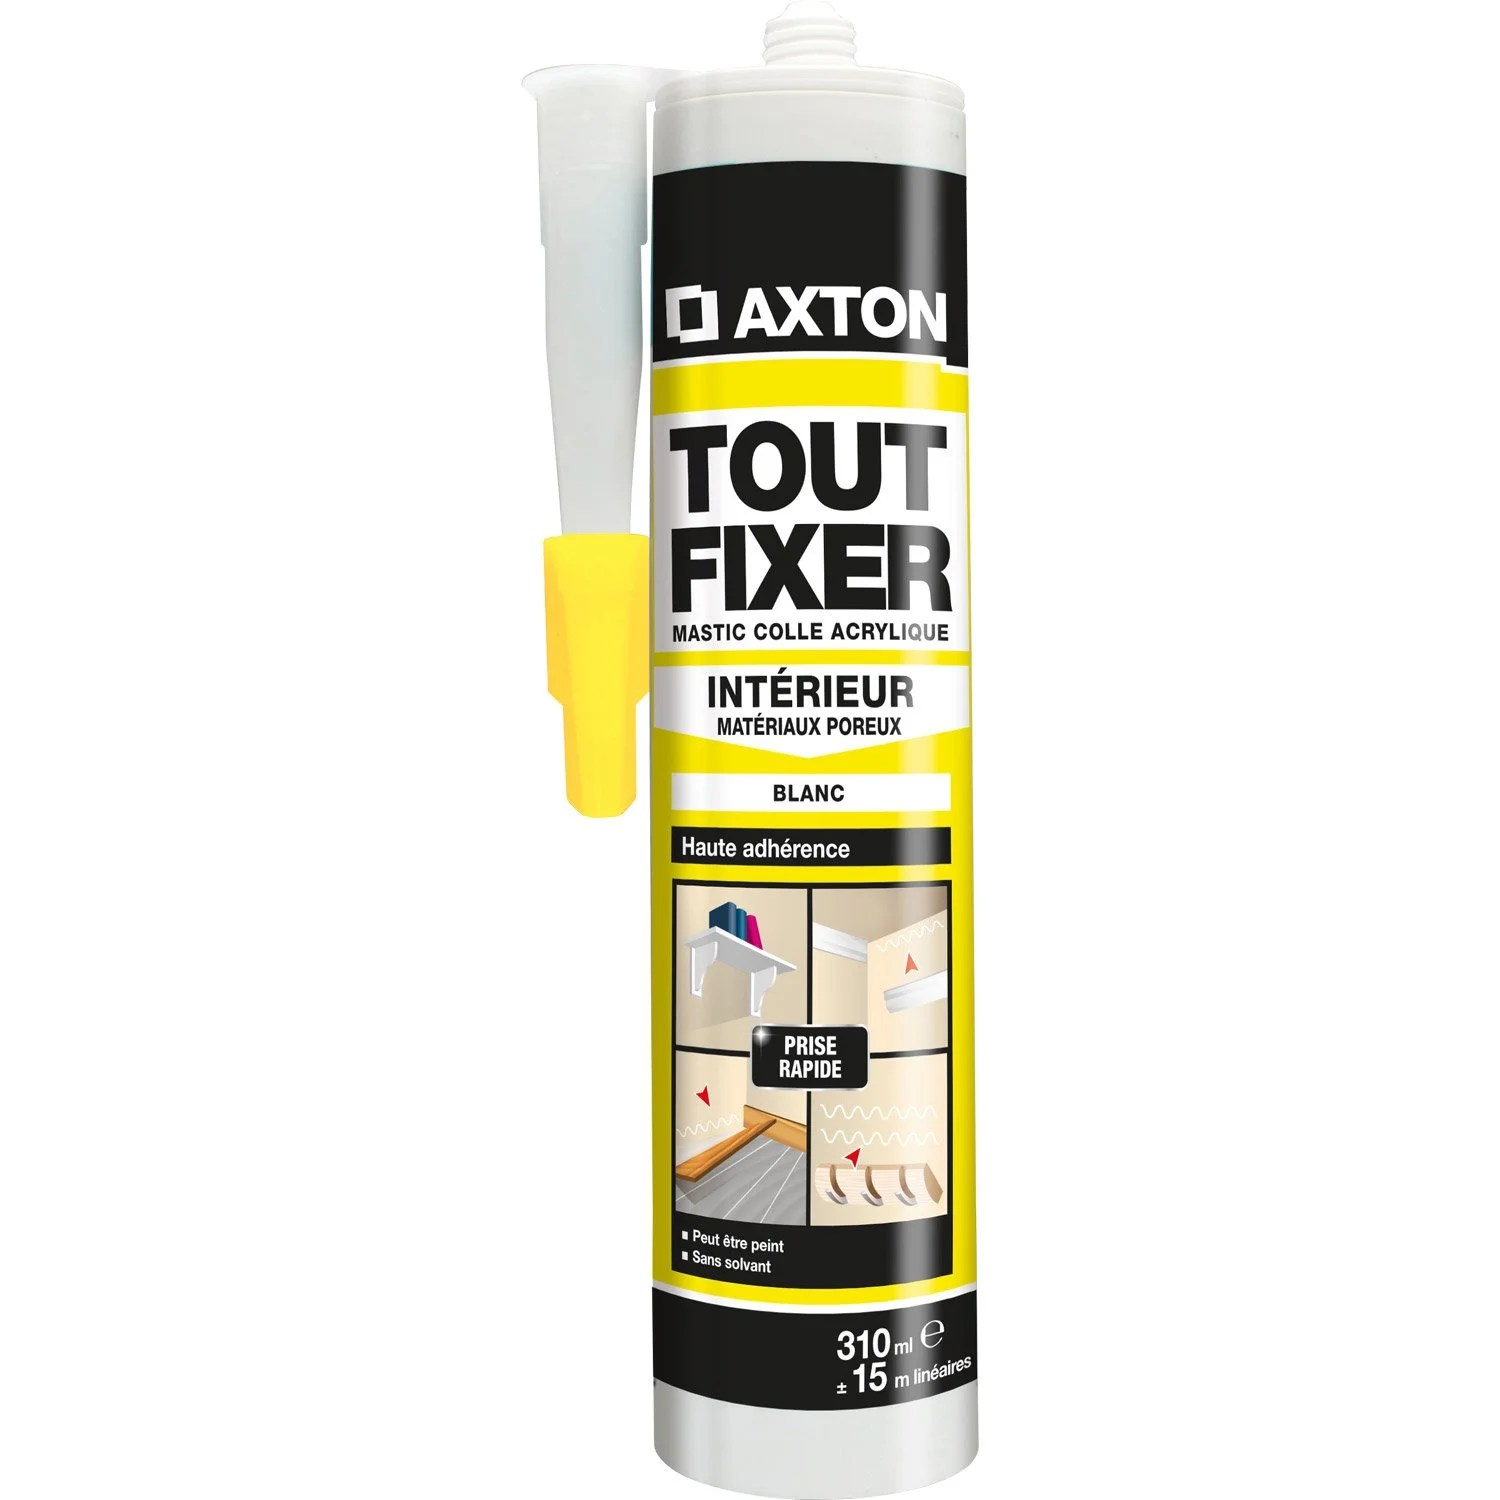 Spa Exterieur Temperature Colle Mastic Tout Fixer Axton 310 Ml Leroy Merlin